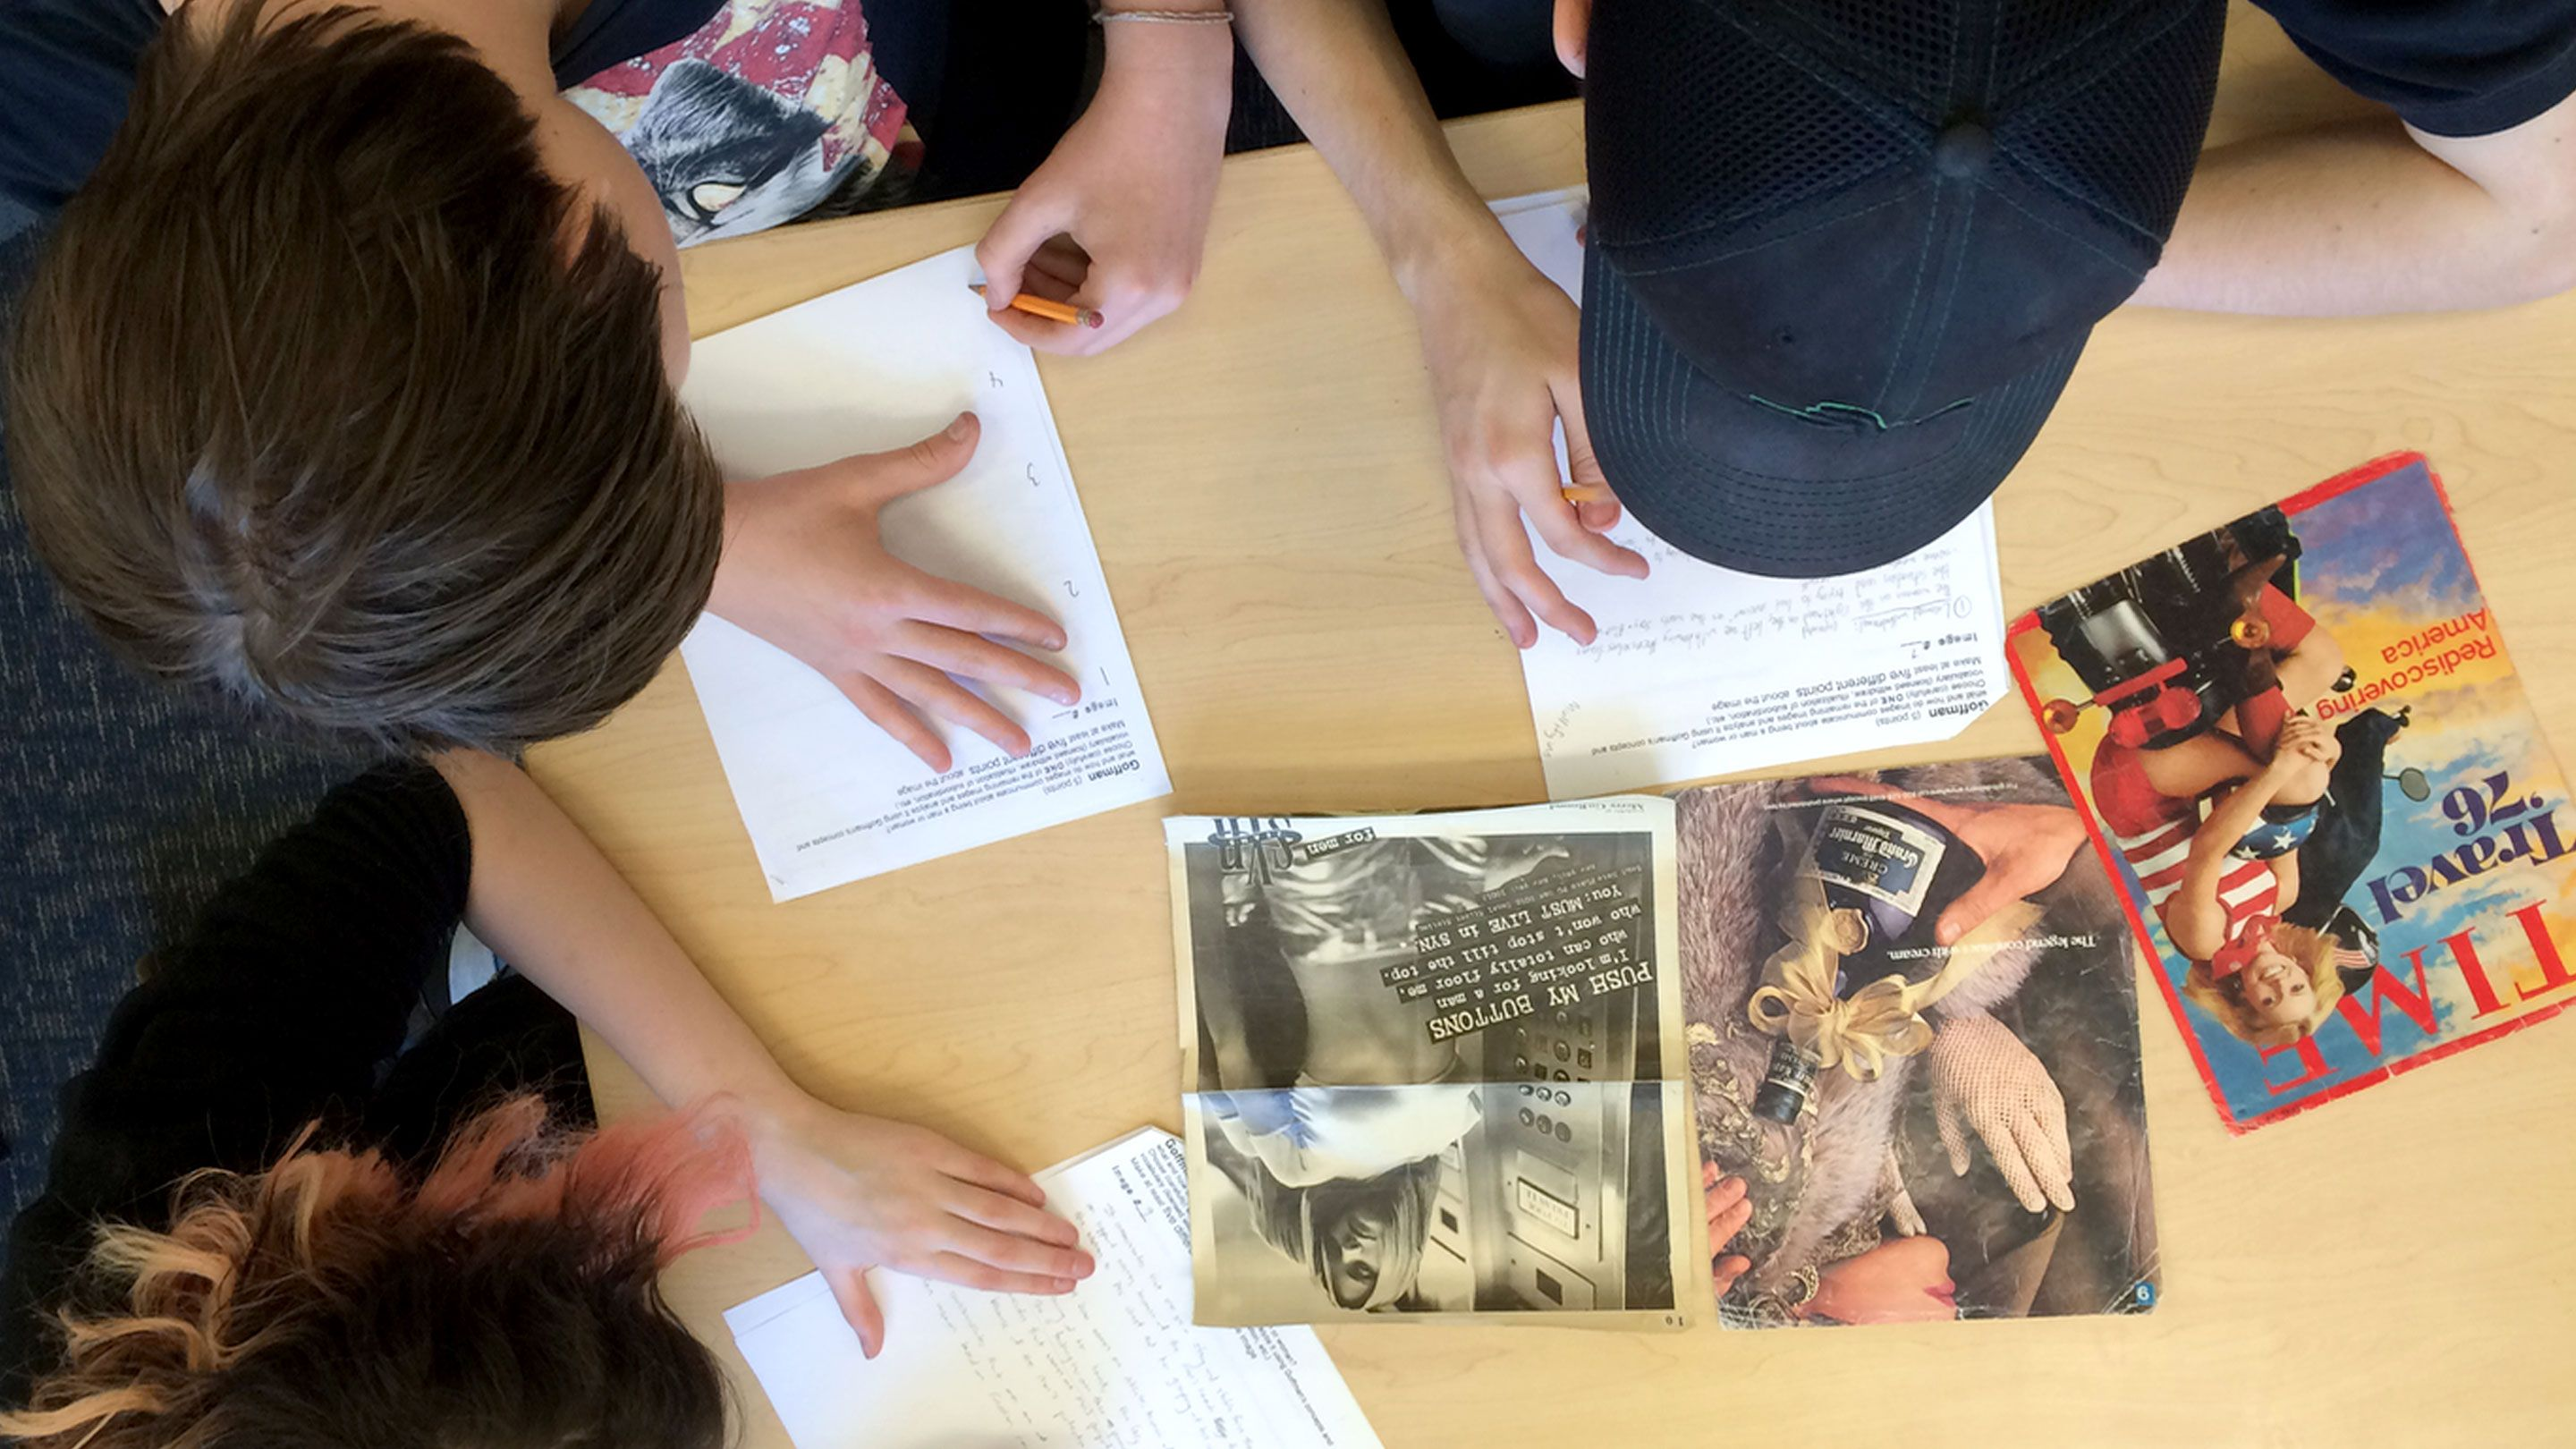 A few teenage students look at various ads and write responses on a handout.